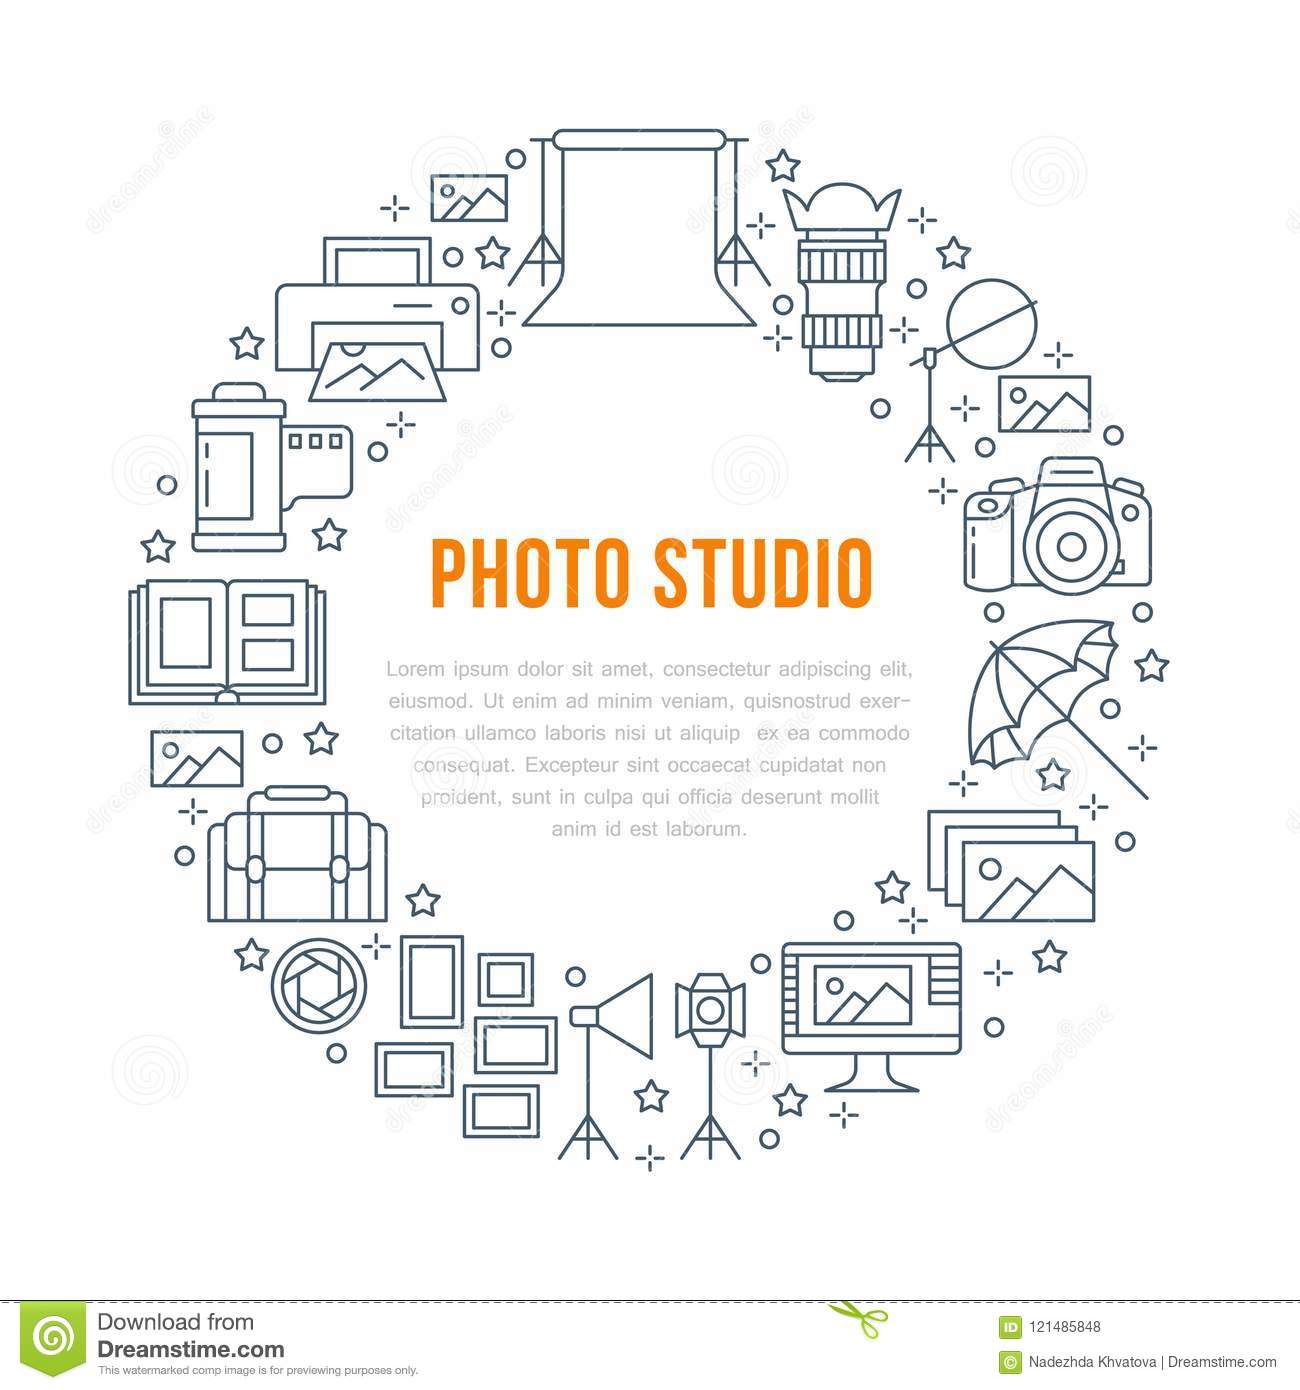 Photography Equipment Poster With Flat Line Icons Digital Camera Lighting Diagram Photos Video Cameras